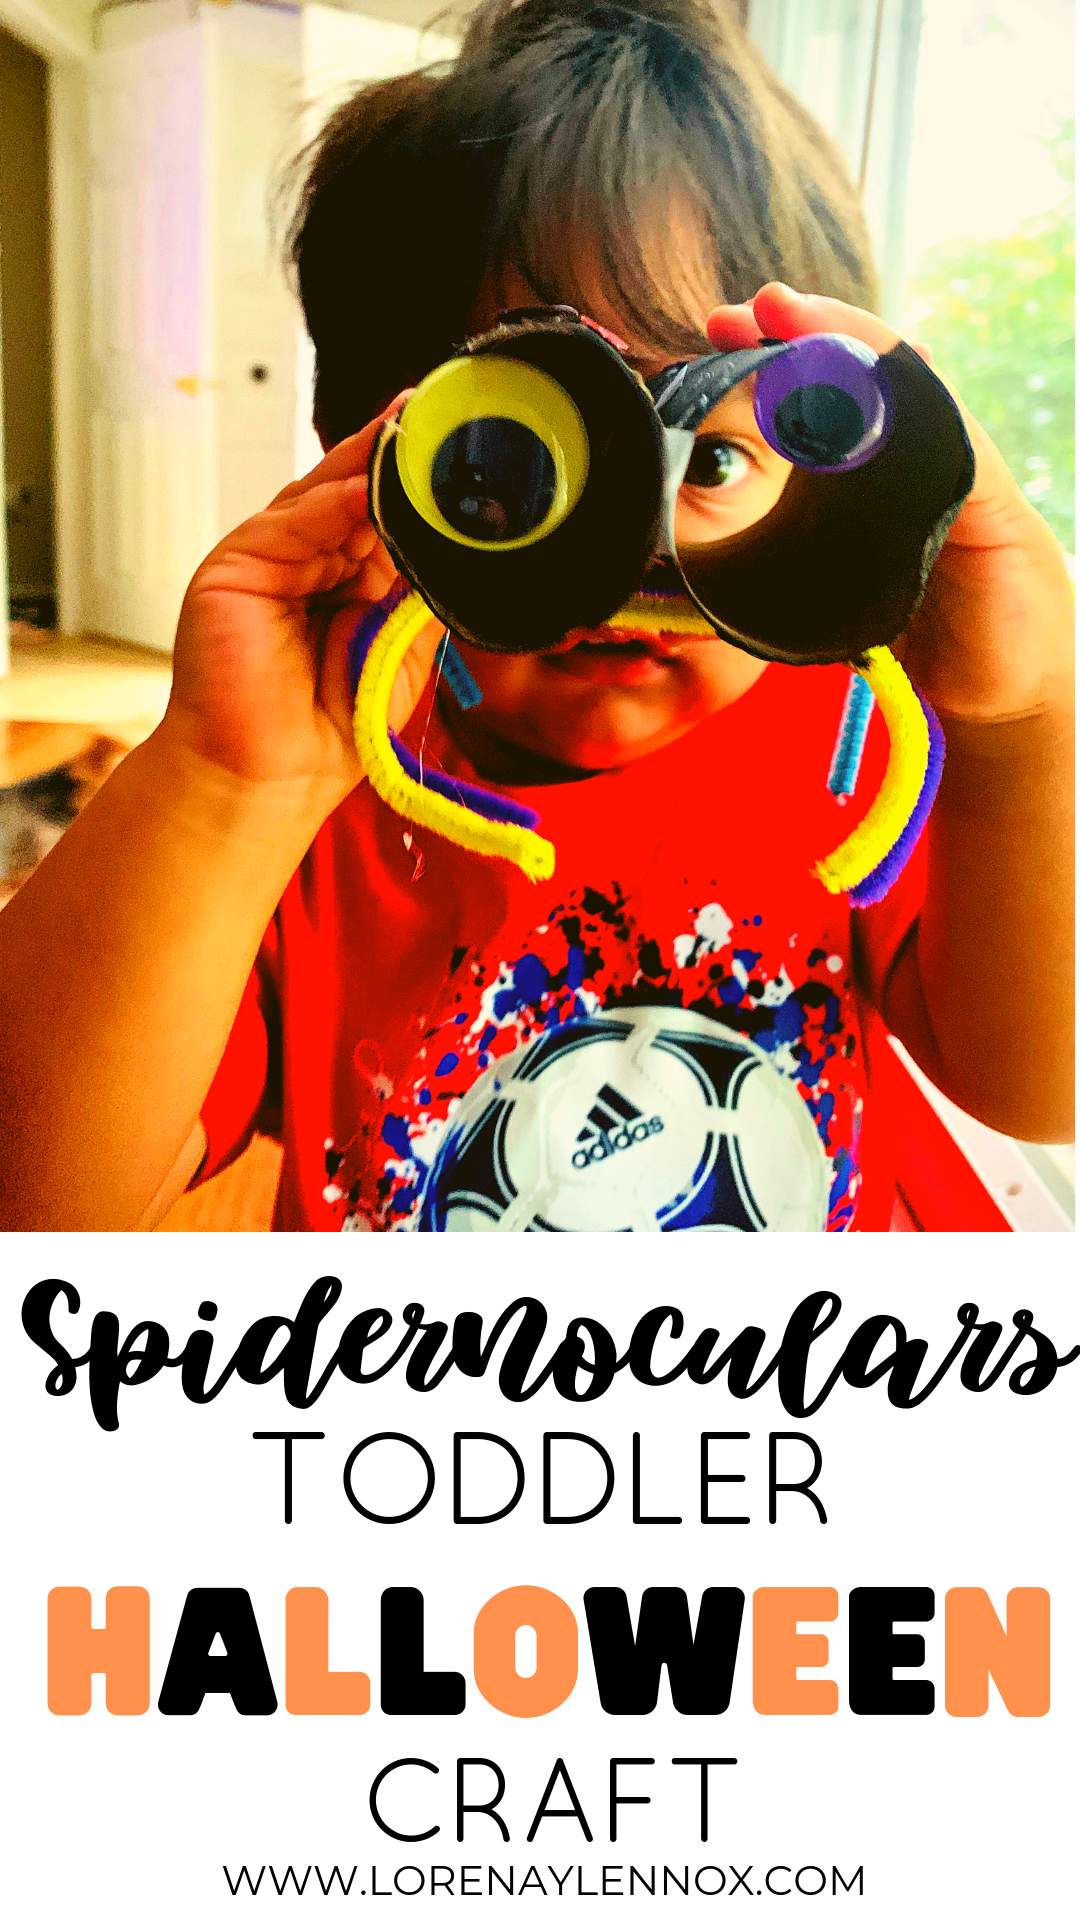 Spidernoculars Toddler Halloween Craft